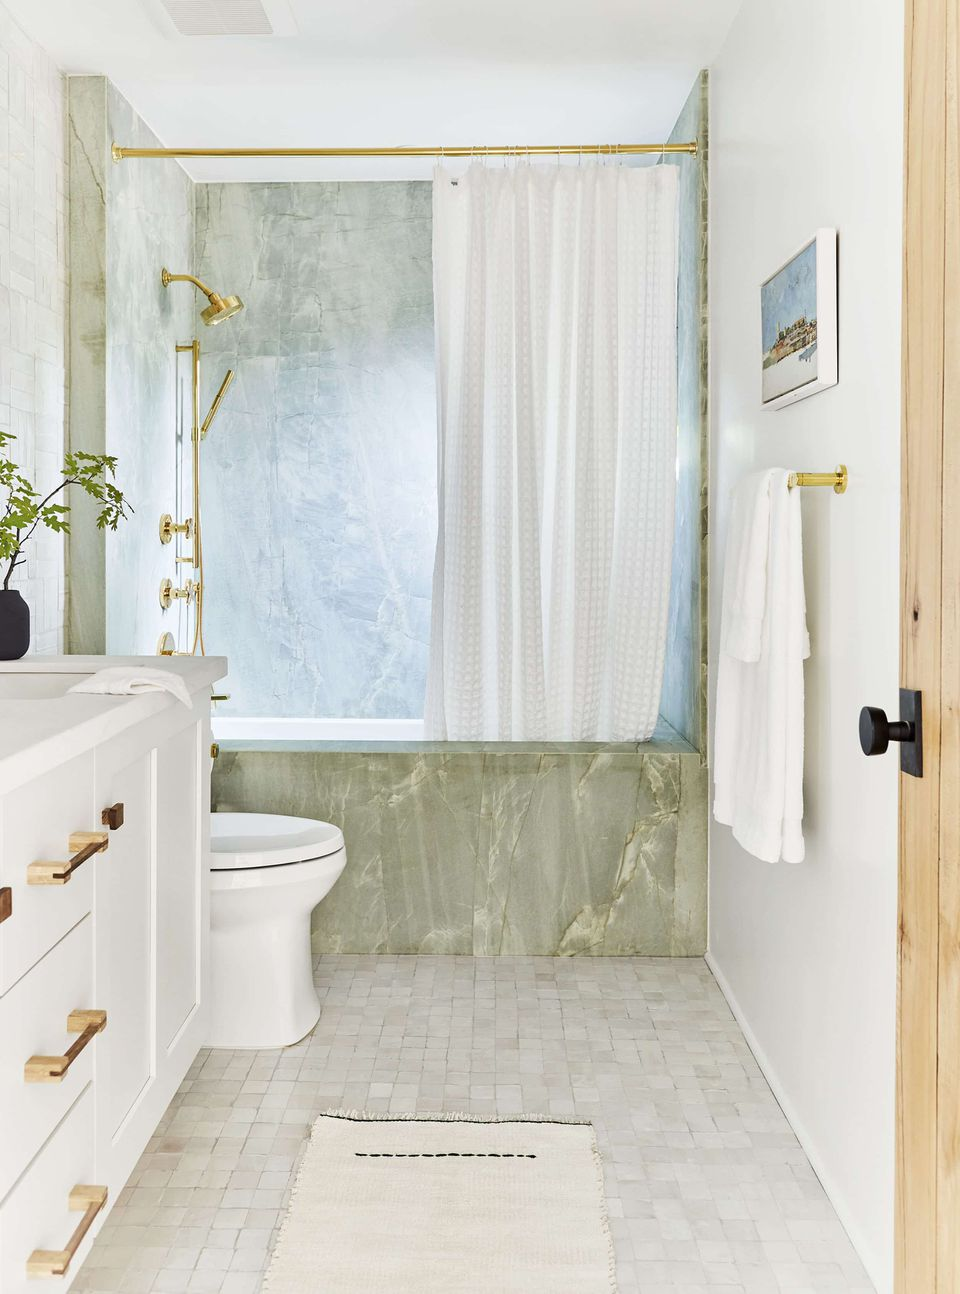 Small Bathrooms Brimming With Style and Function on Small Space Small Bathroom Ideas With Tub id=94141